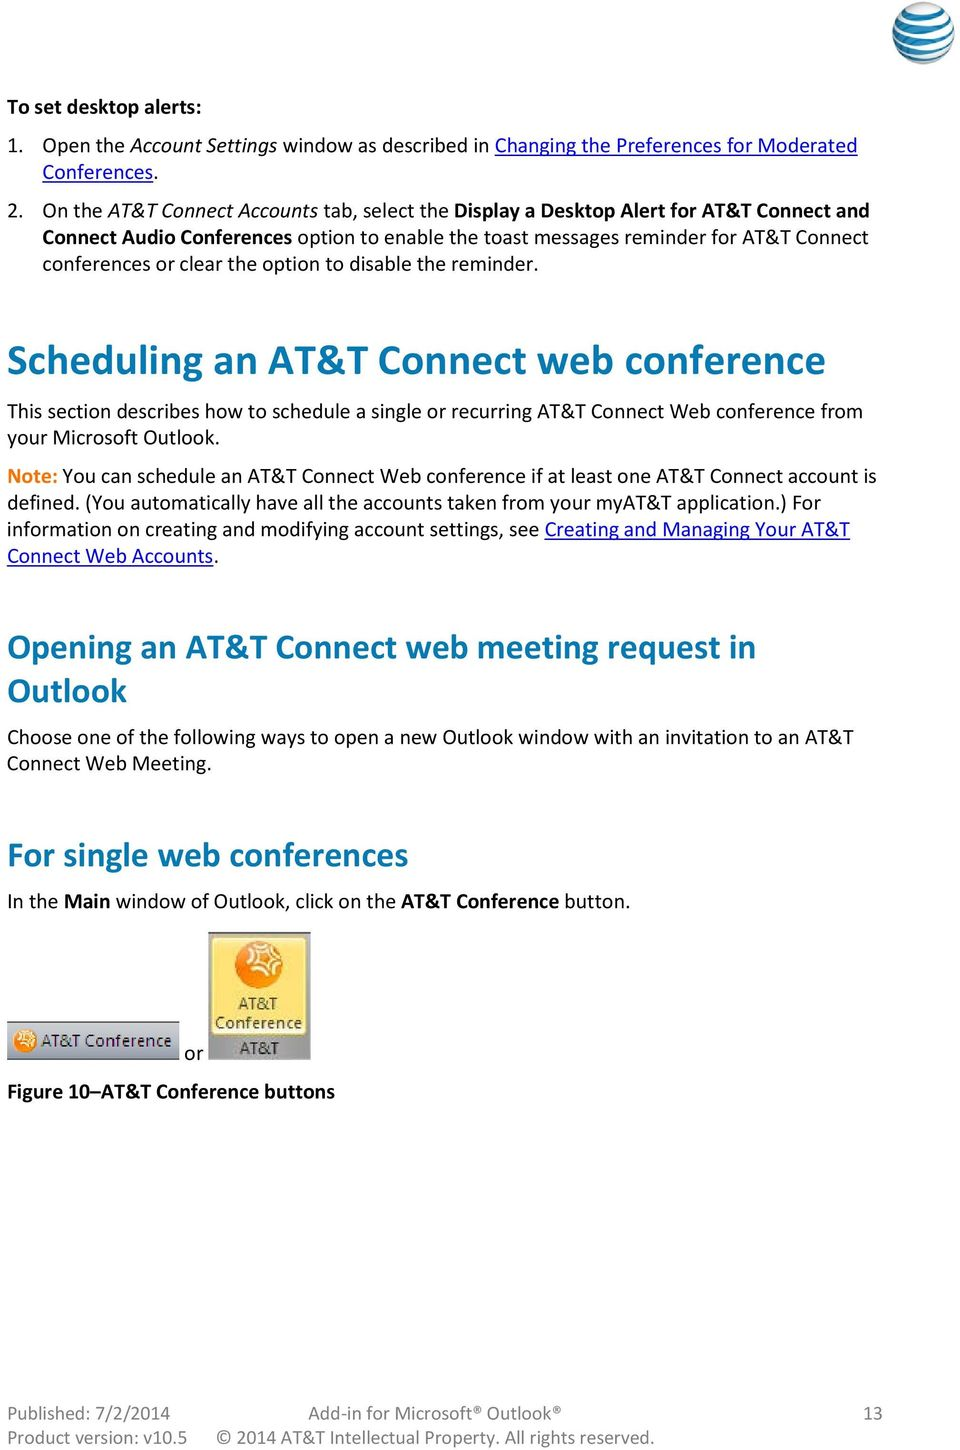 the option to disable the reminder. Scheduling an AT&T Connect web conference This section describes how to schedule a single or recurring AT&T Connect Web conference from your Microsoft Outlook.